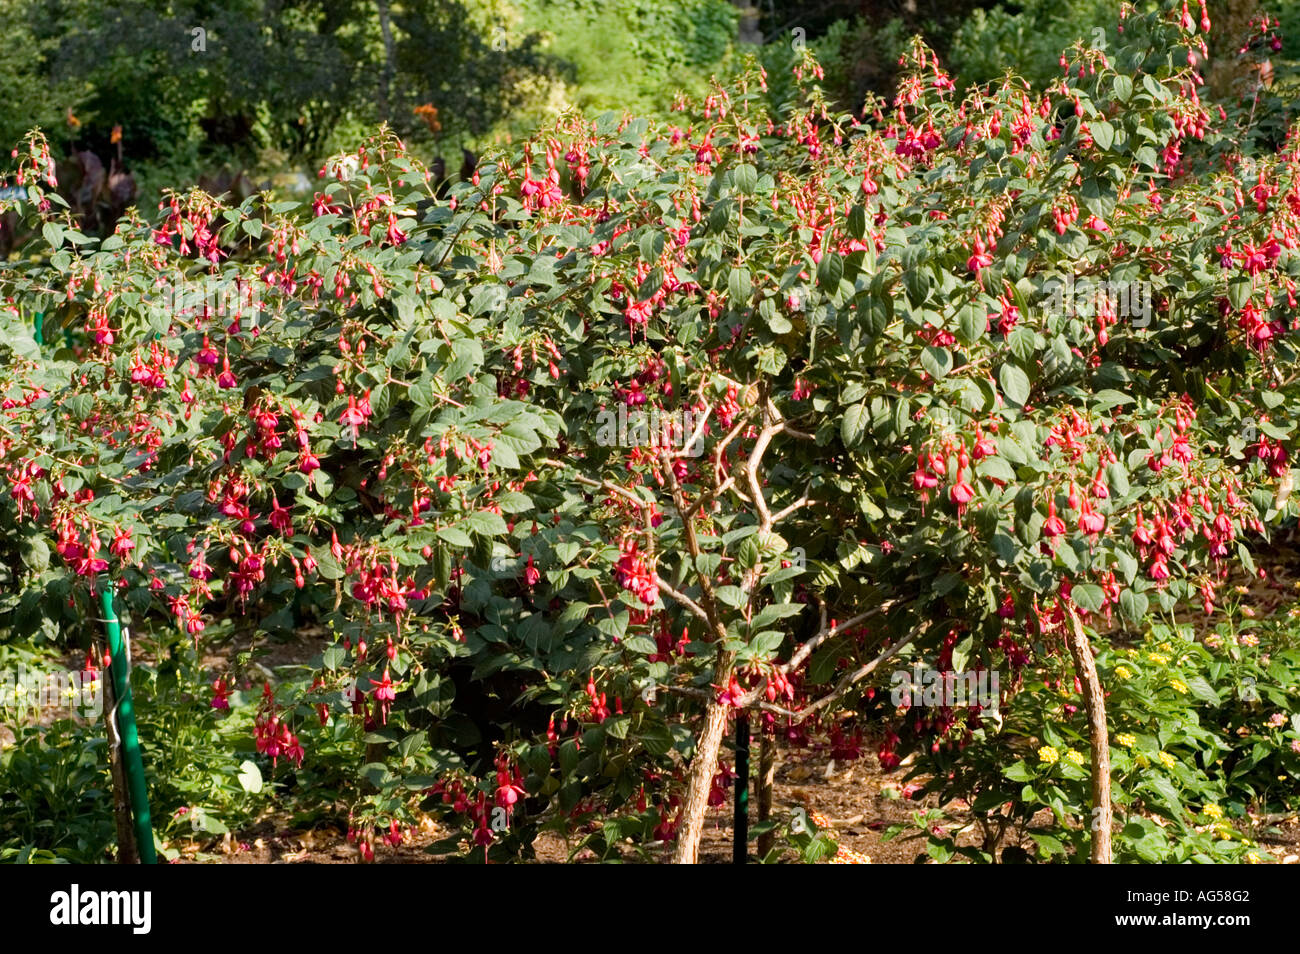 Tree Busch Stock Photos & Tree Busch Stock Images - Alamy